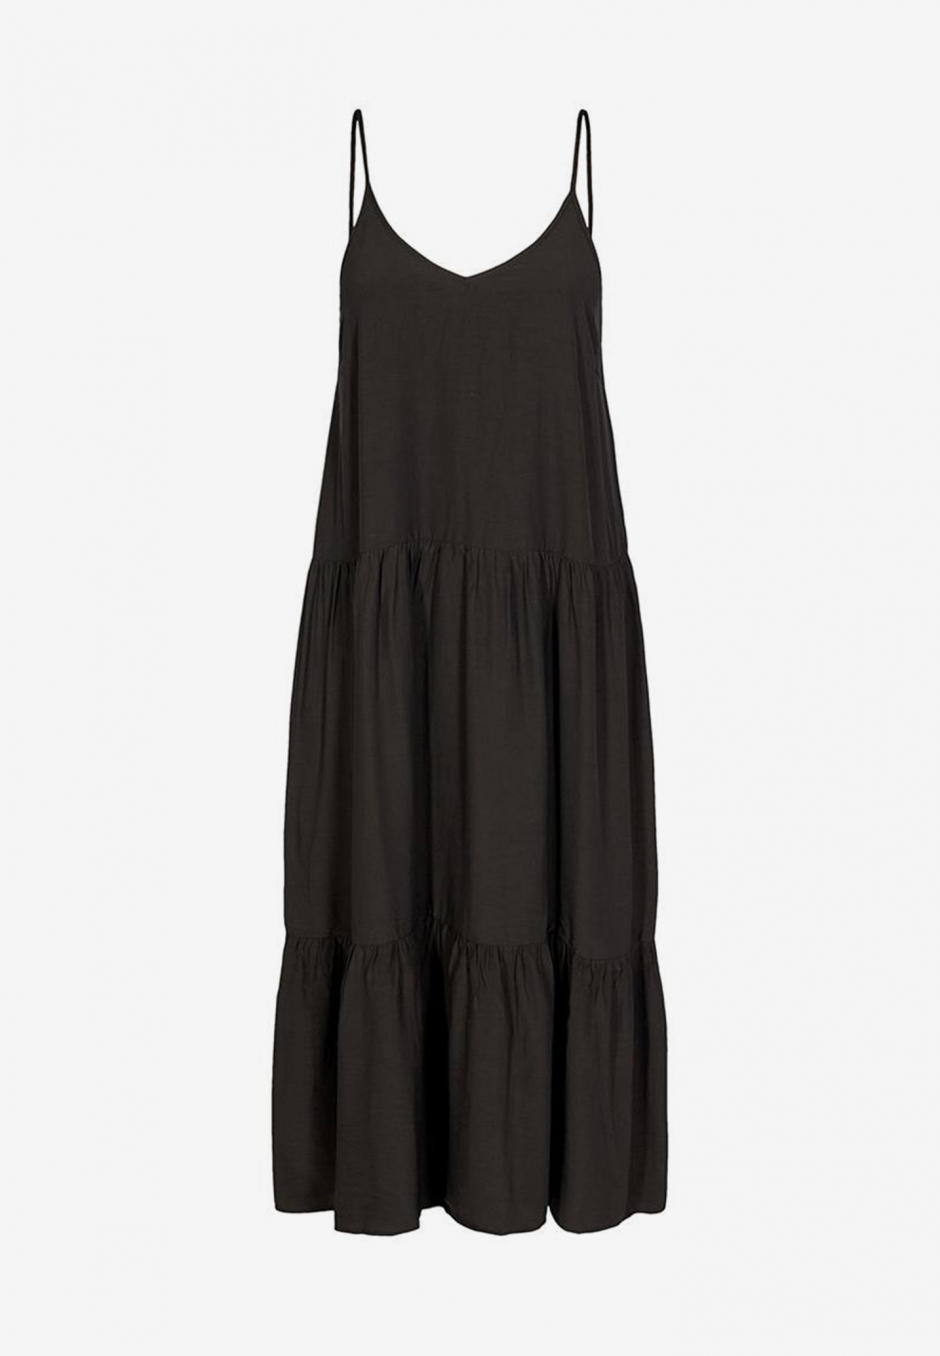 Co'couture New Gipsy Strap Dress